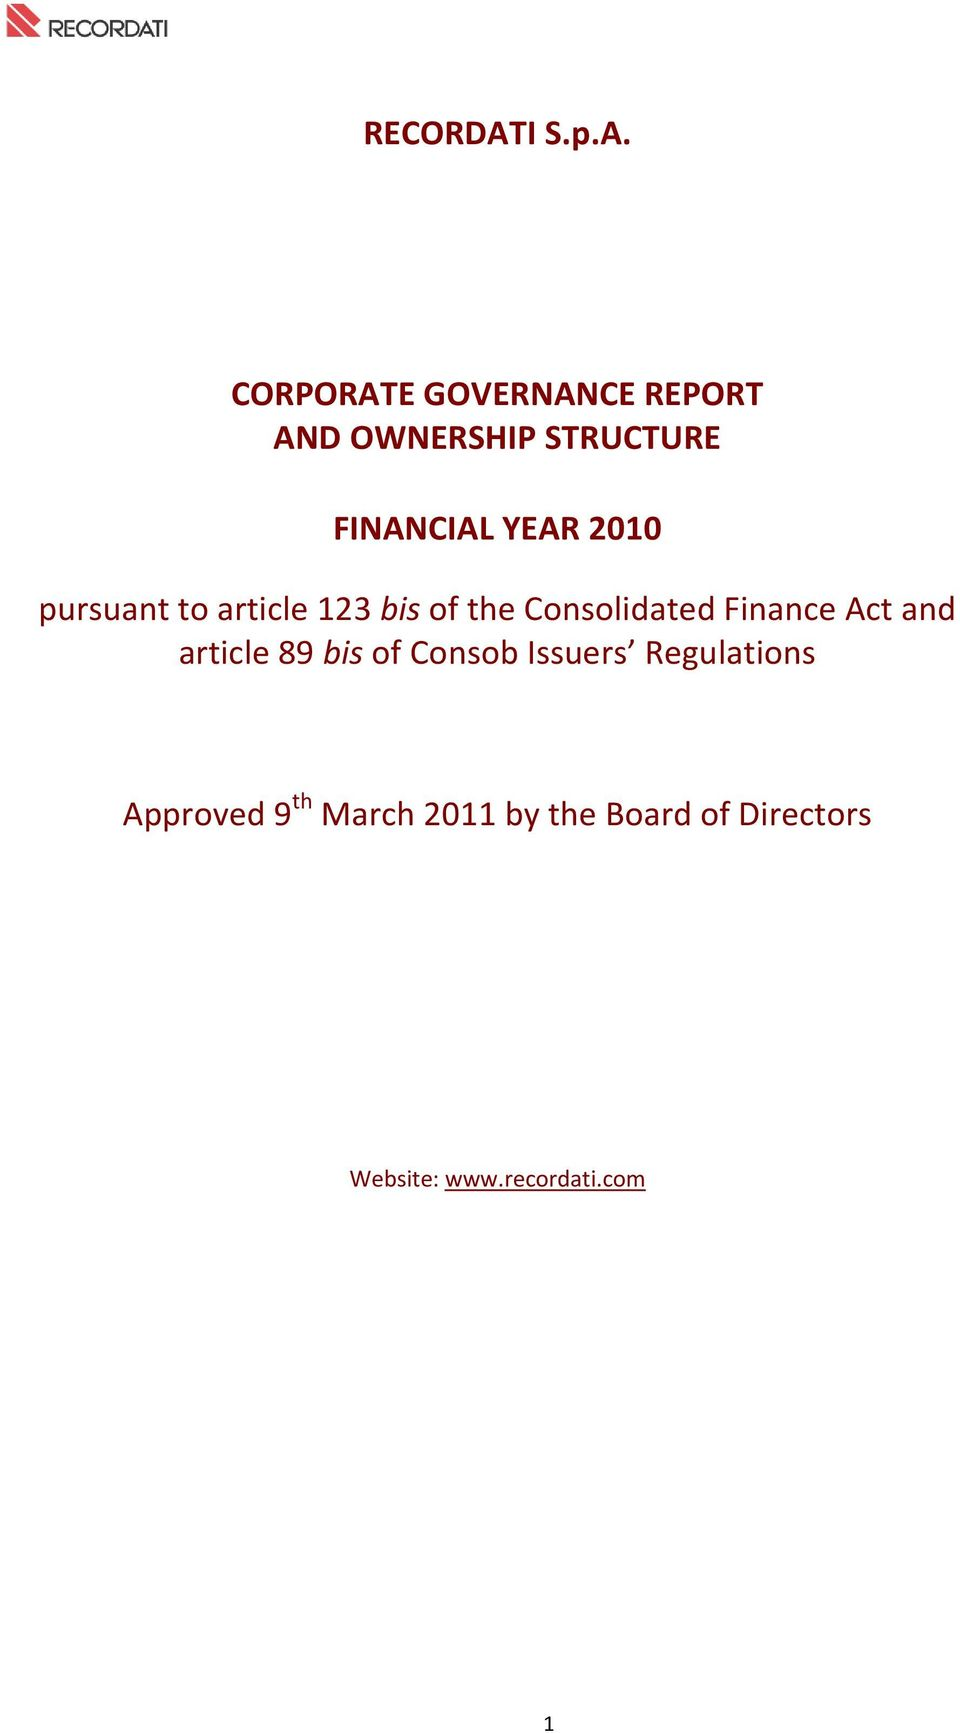 CORPORATE GOVERNANCE REPORT AND OWNERSHIP STRUCTURE FINANCIAL YEAR